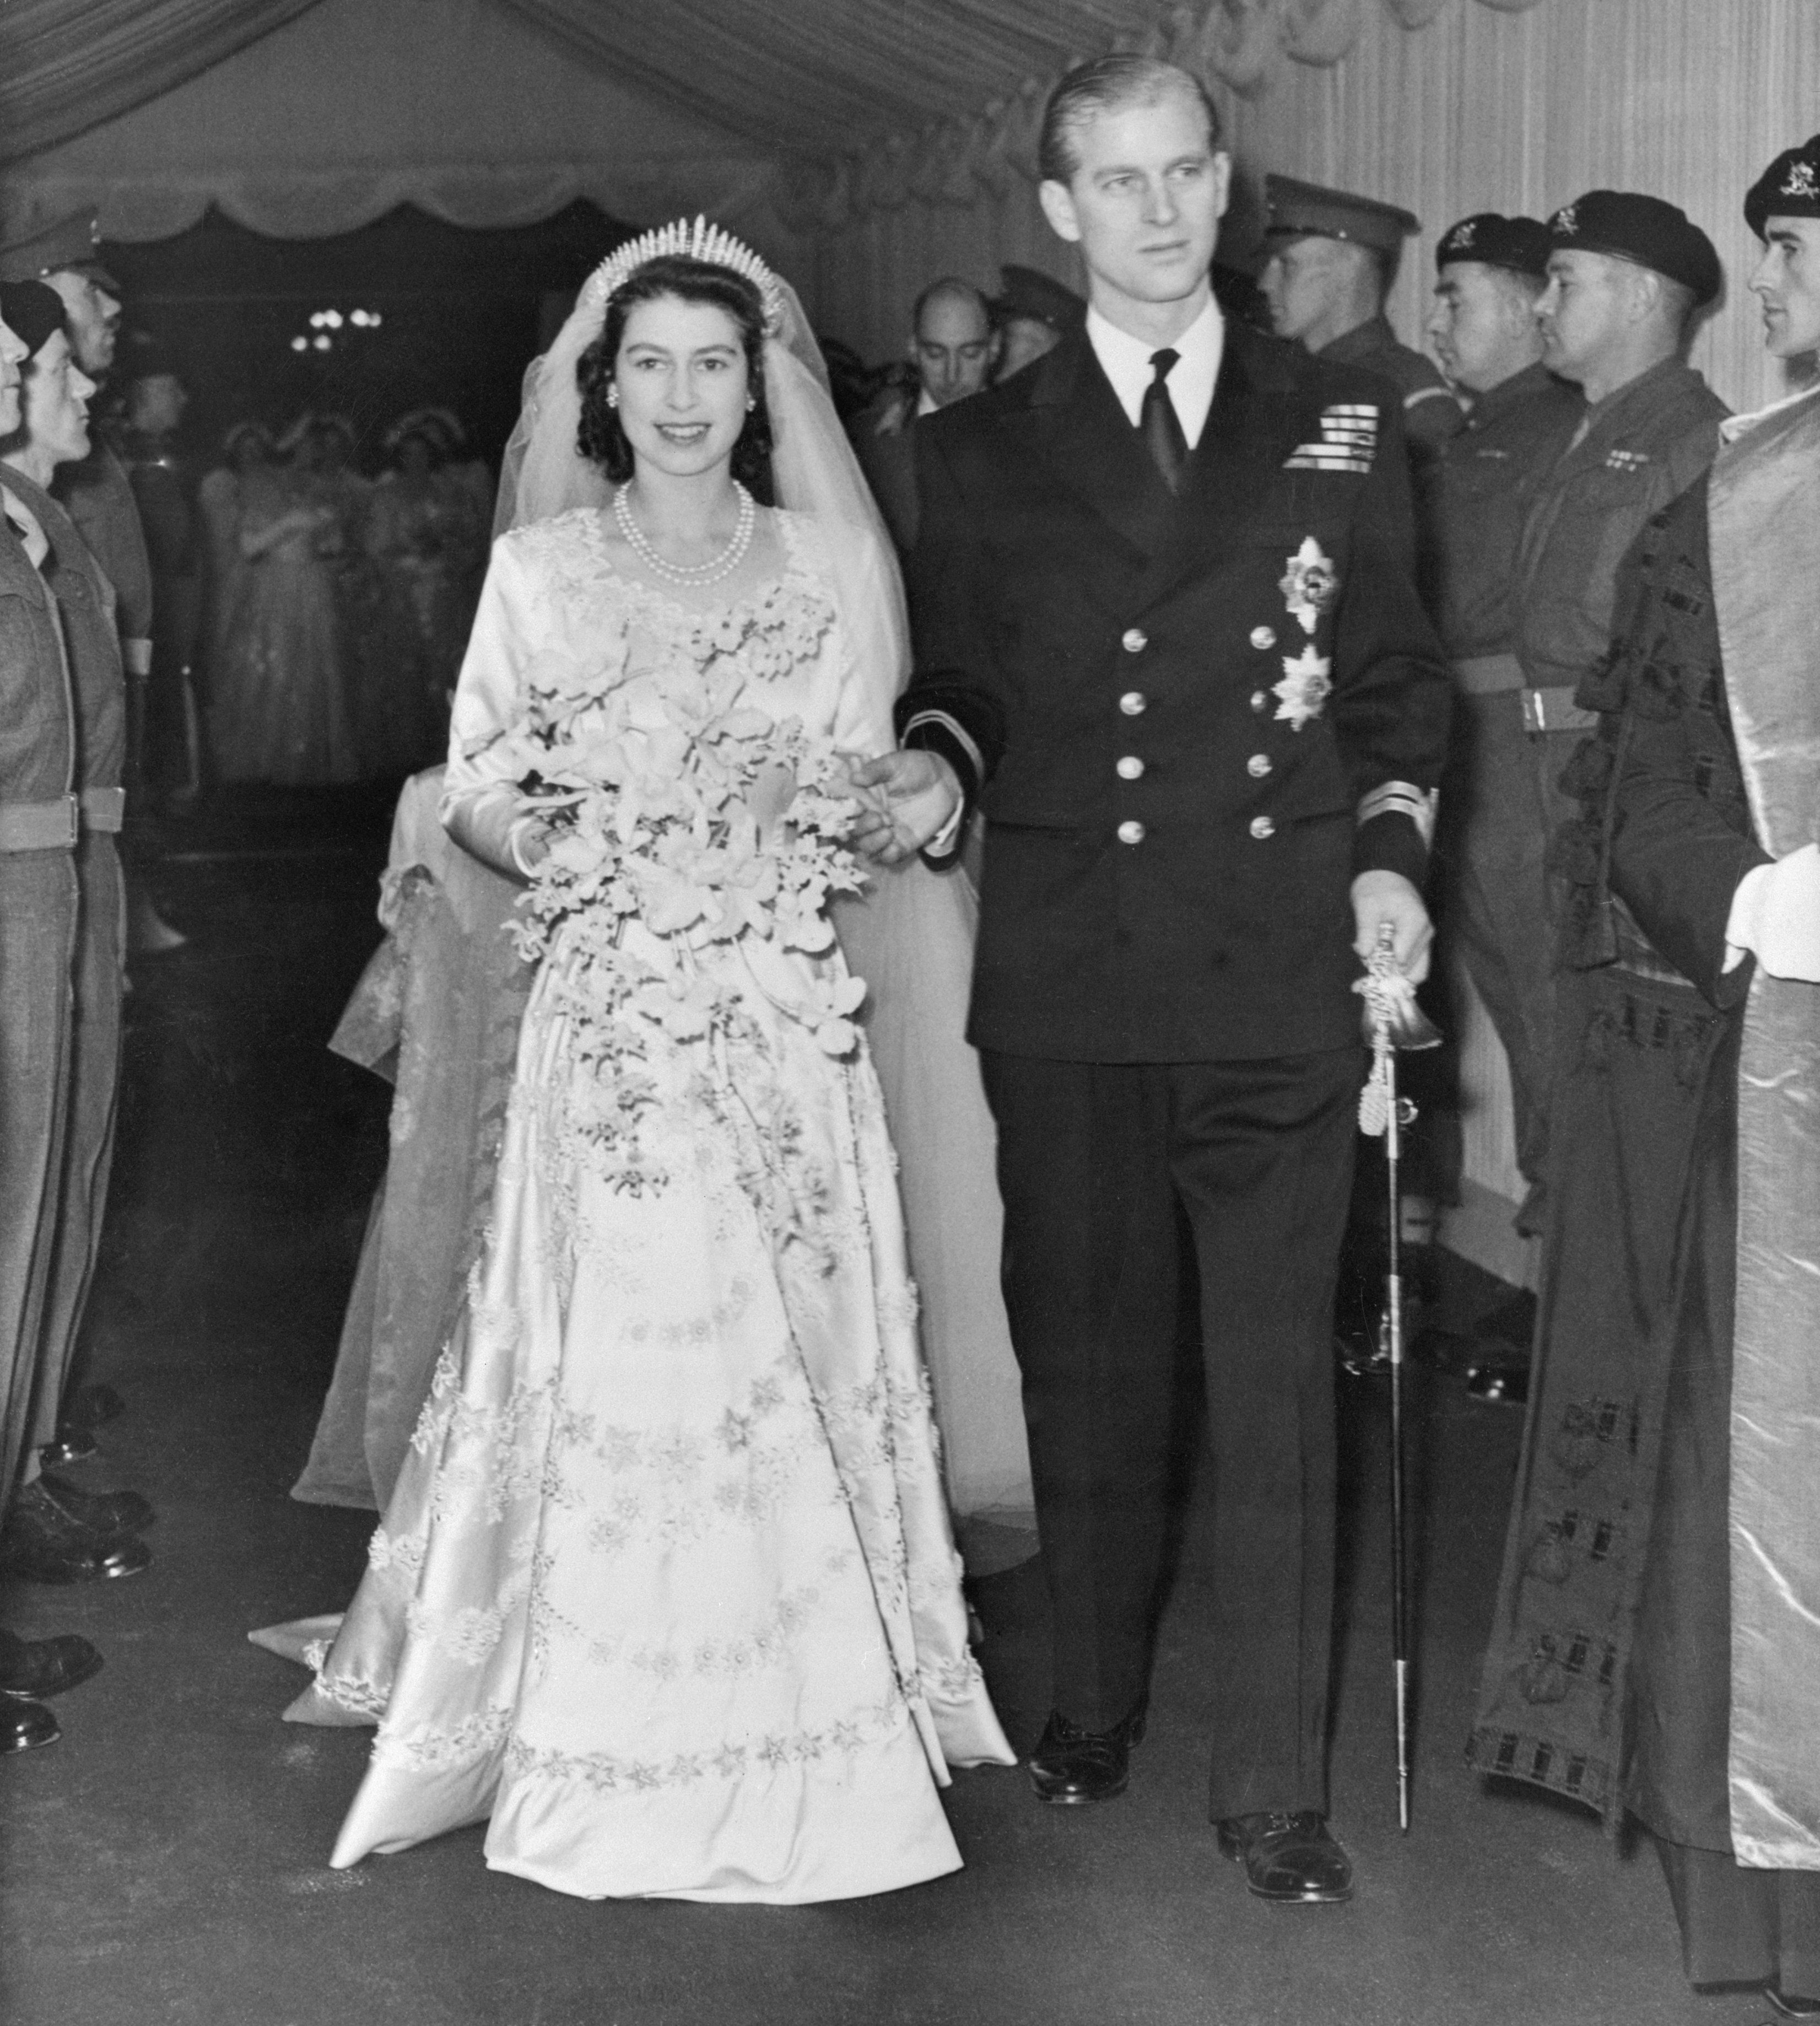 The Queen and Duke of Edinburgh on their wedding day in 1947